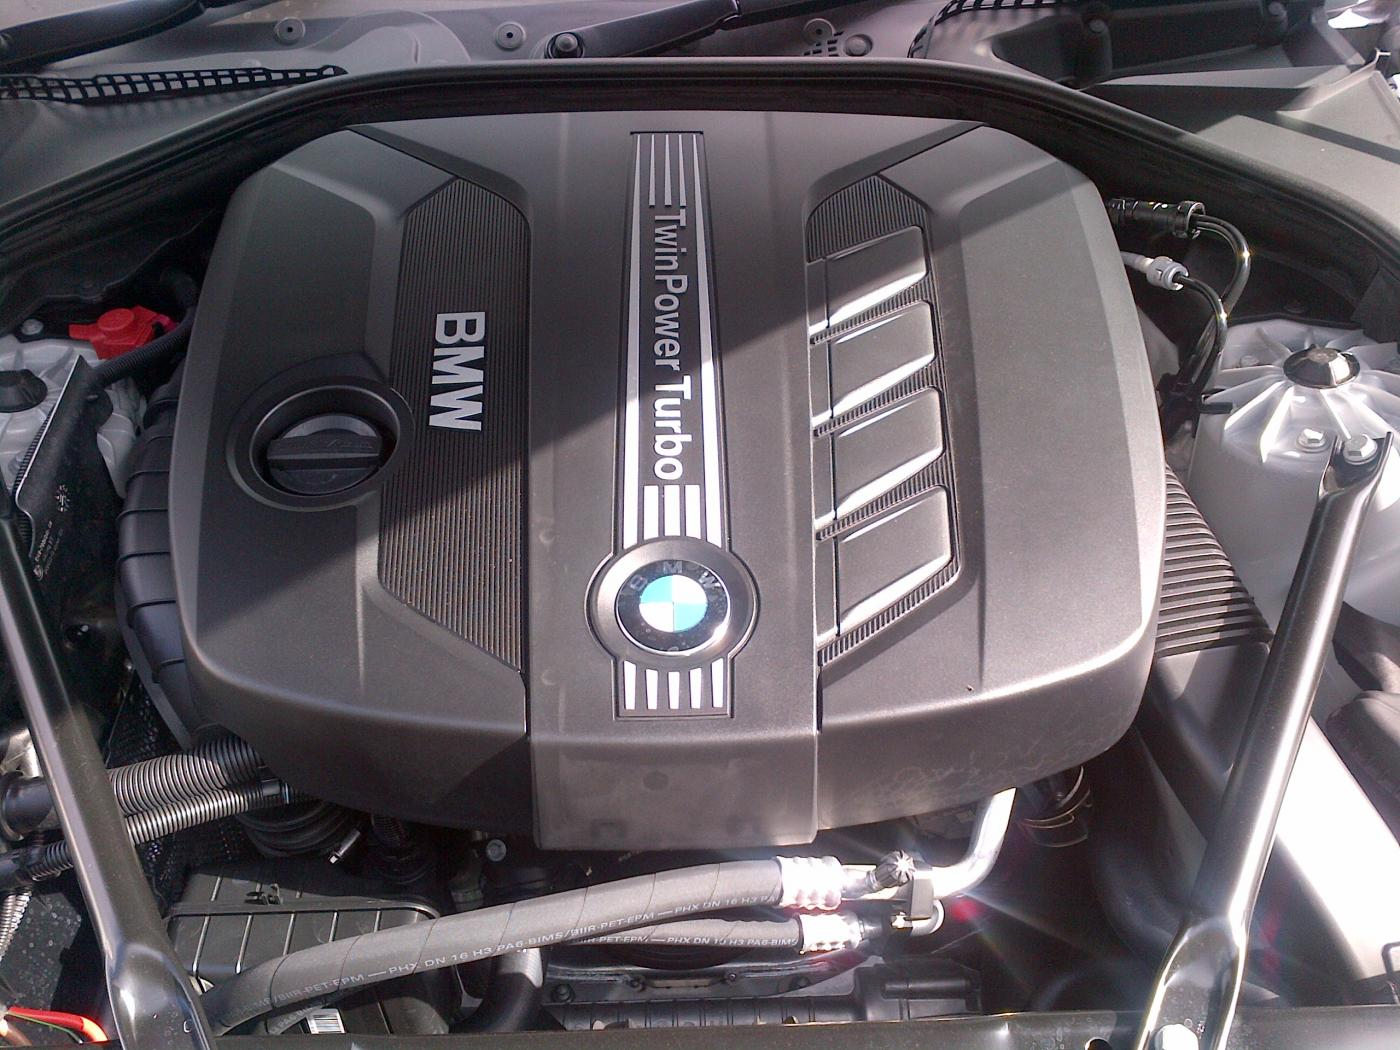 520d Engine Cover